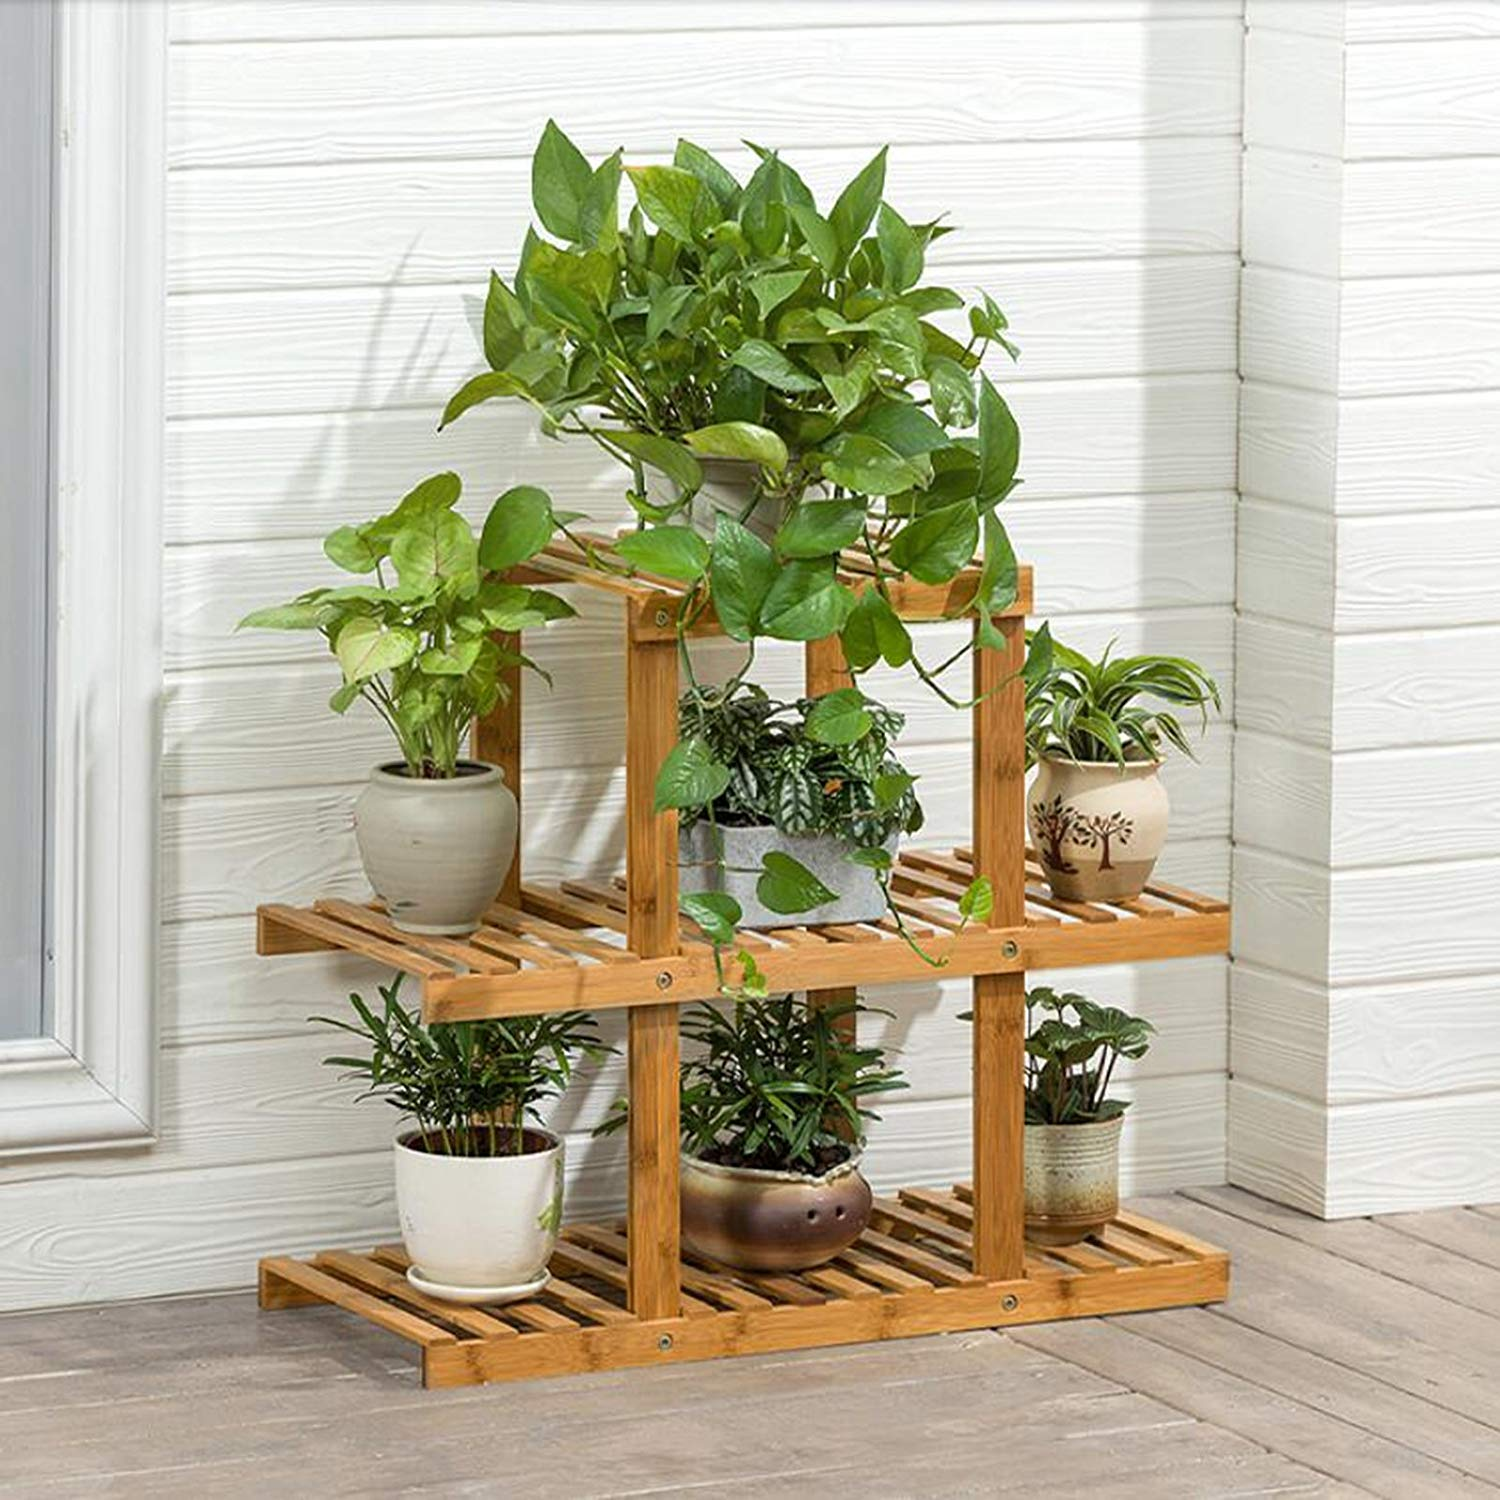 Magshion Wooden Flower Stands Plant Display Rack Choose 3 Shelves